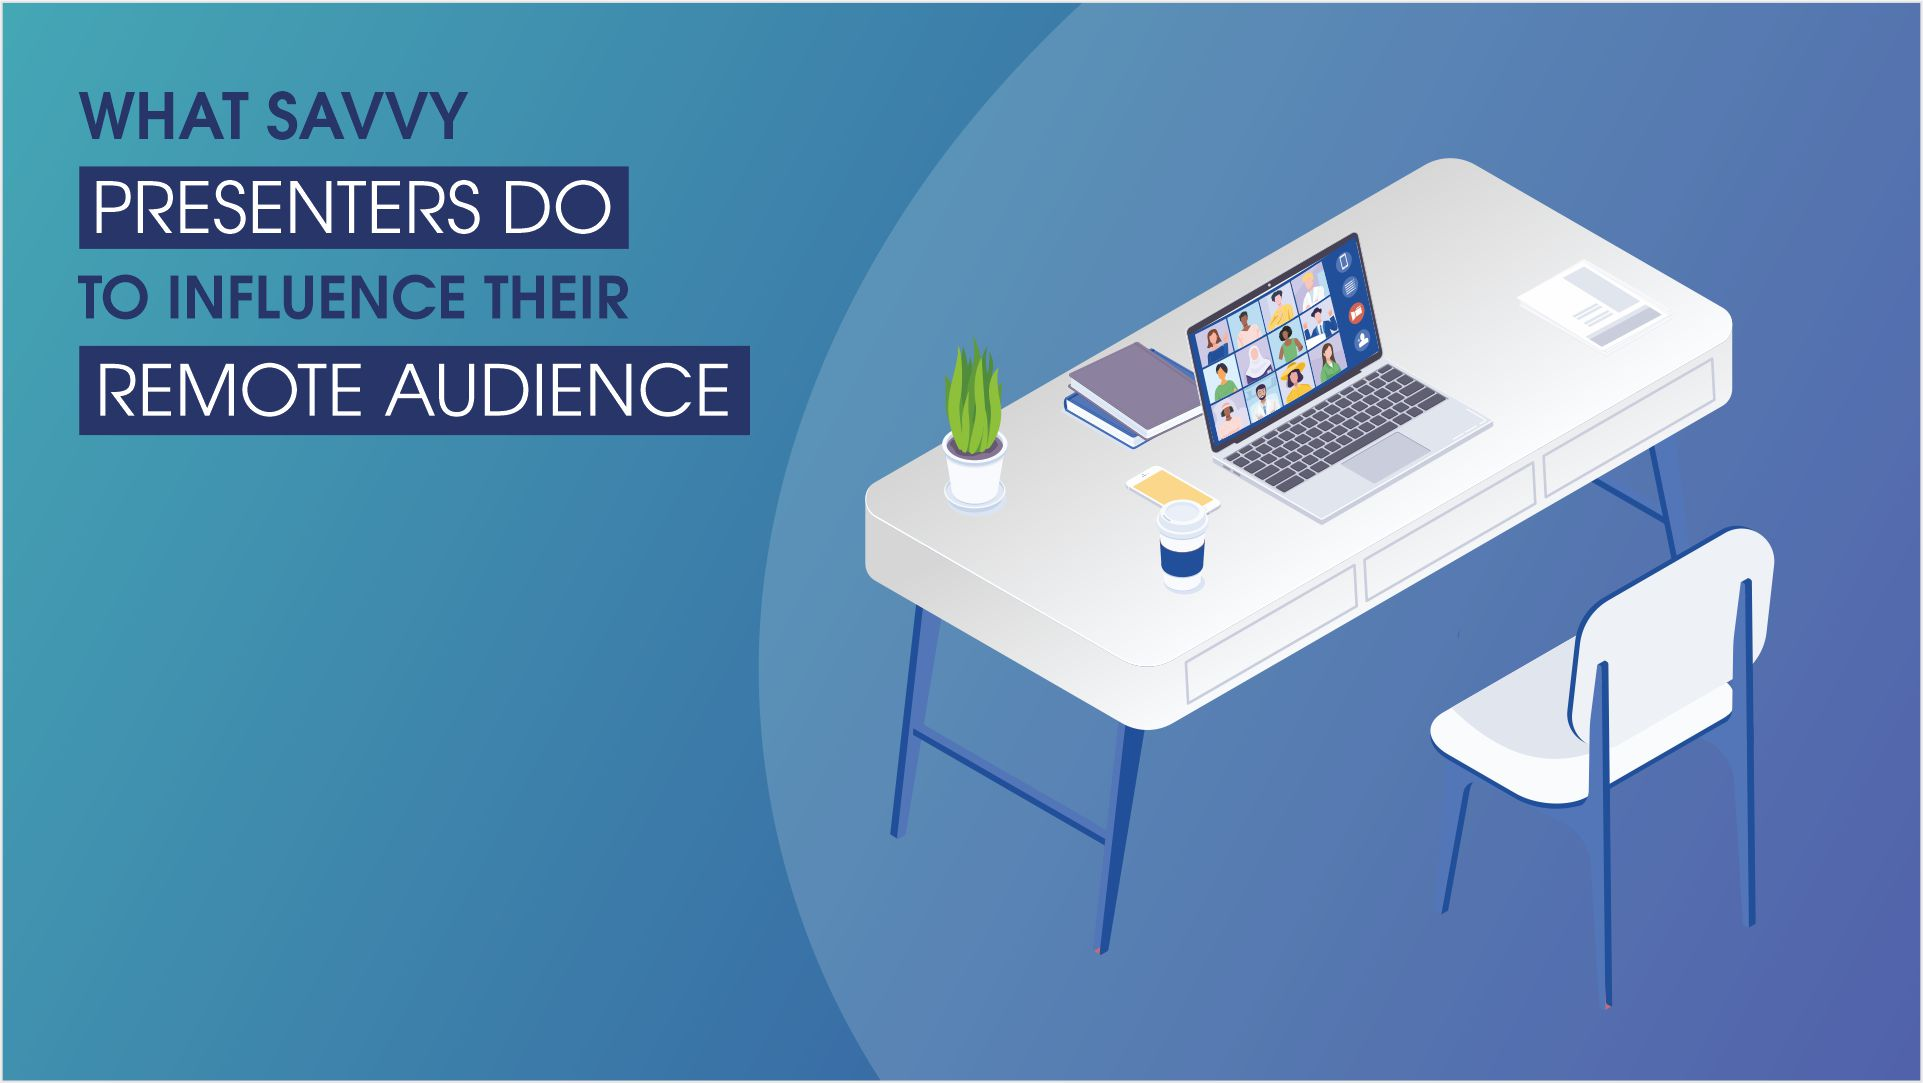 What Savvy Presenters Do To Influence Their Remote Audience